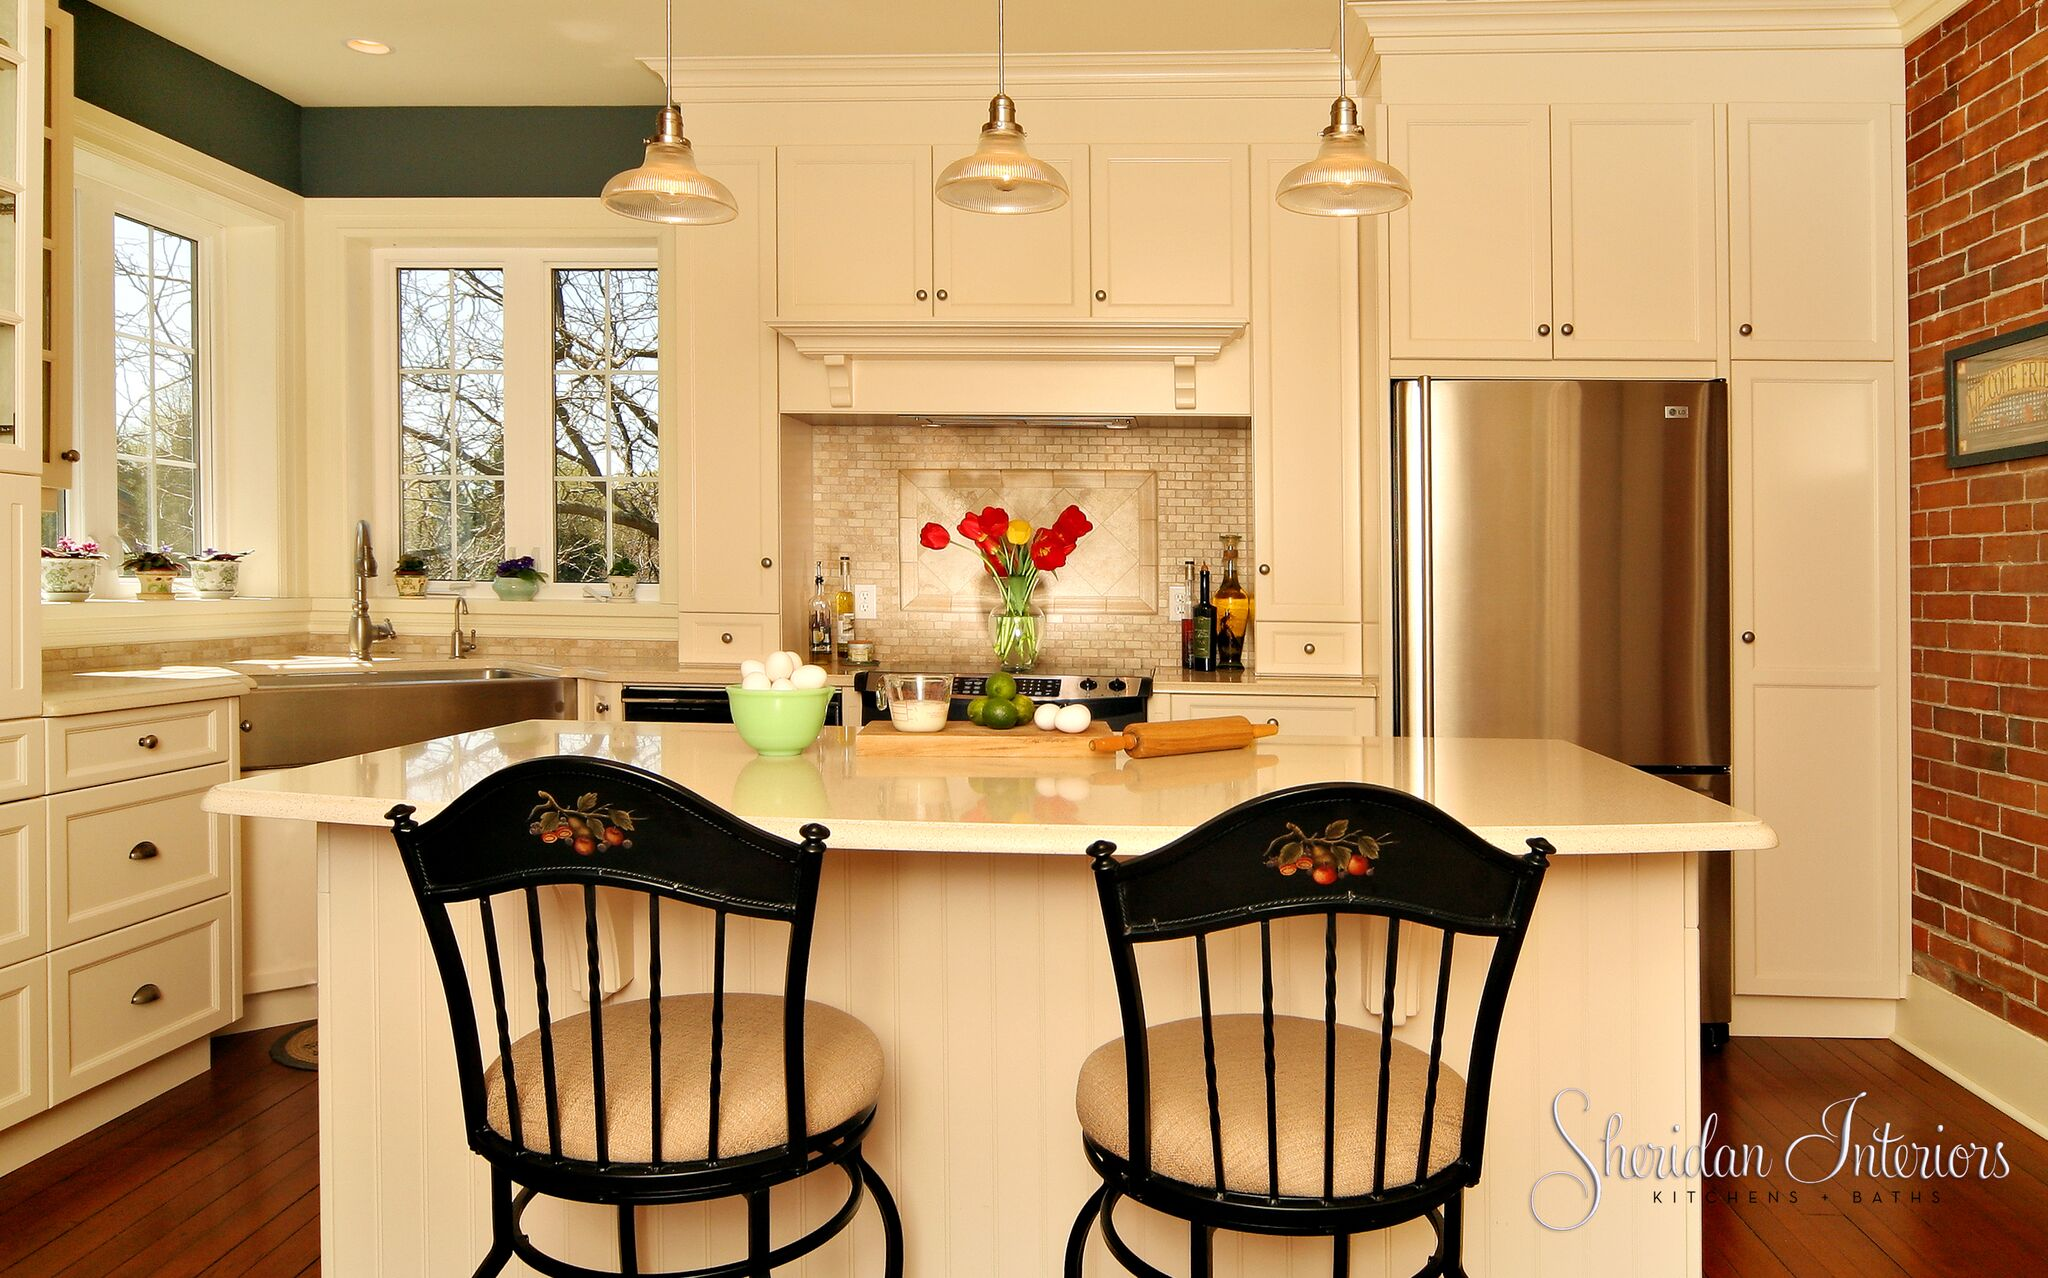 country kitchen, farmhouse kitchen, white country kitchen, farmhouse sink, stainless steel farmhouse sink, corner sink, apron front sink, marble brick backsplash brick wall in kitchen, white countertops, kitchen with wood floors, hardwood floors in kitchen, kitchen designer cornwall, kitchen designer ottawa, kitchen designer finch, interior designer cornwall, interior designer ottawa, schoolhouse pendants, kitchen designer cornwall, kitchen designer ottawa, interior designer cornwall, interior designer ottawa, 1800's Redux Gallery - Sheridan Interiors, sheridan interiors kitchens and baths, sheridan interiors